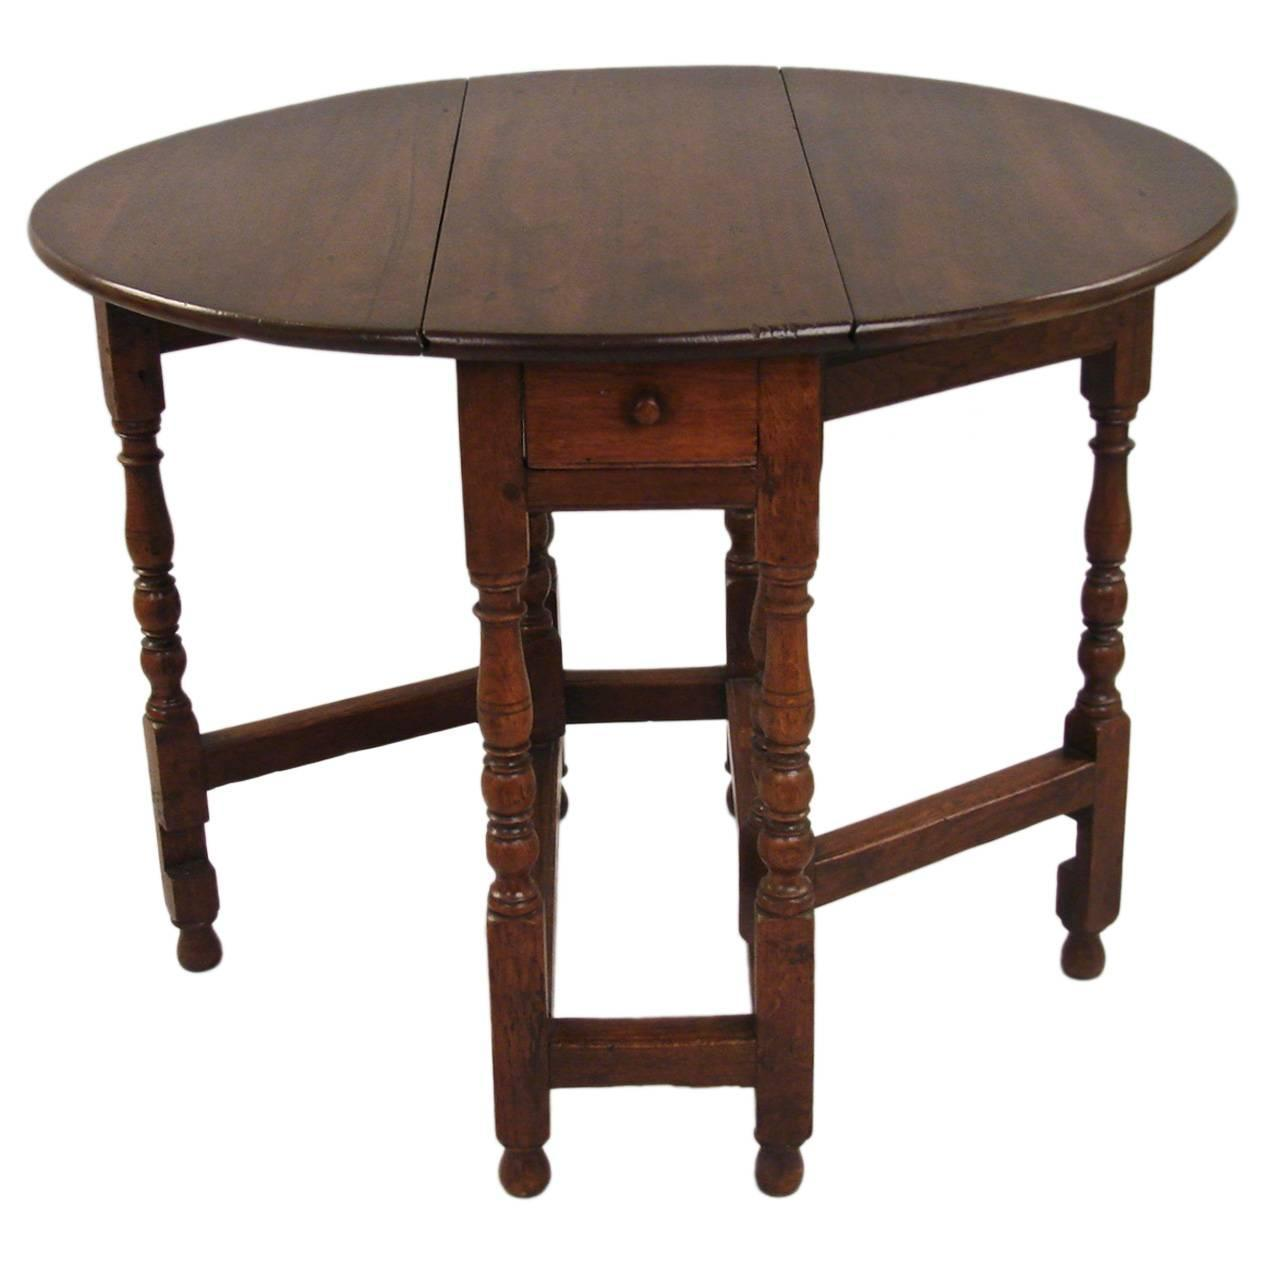 Small william and mary oak gateleg table with drawer for sale at 1stdibs - Gateleg table and chairs ...